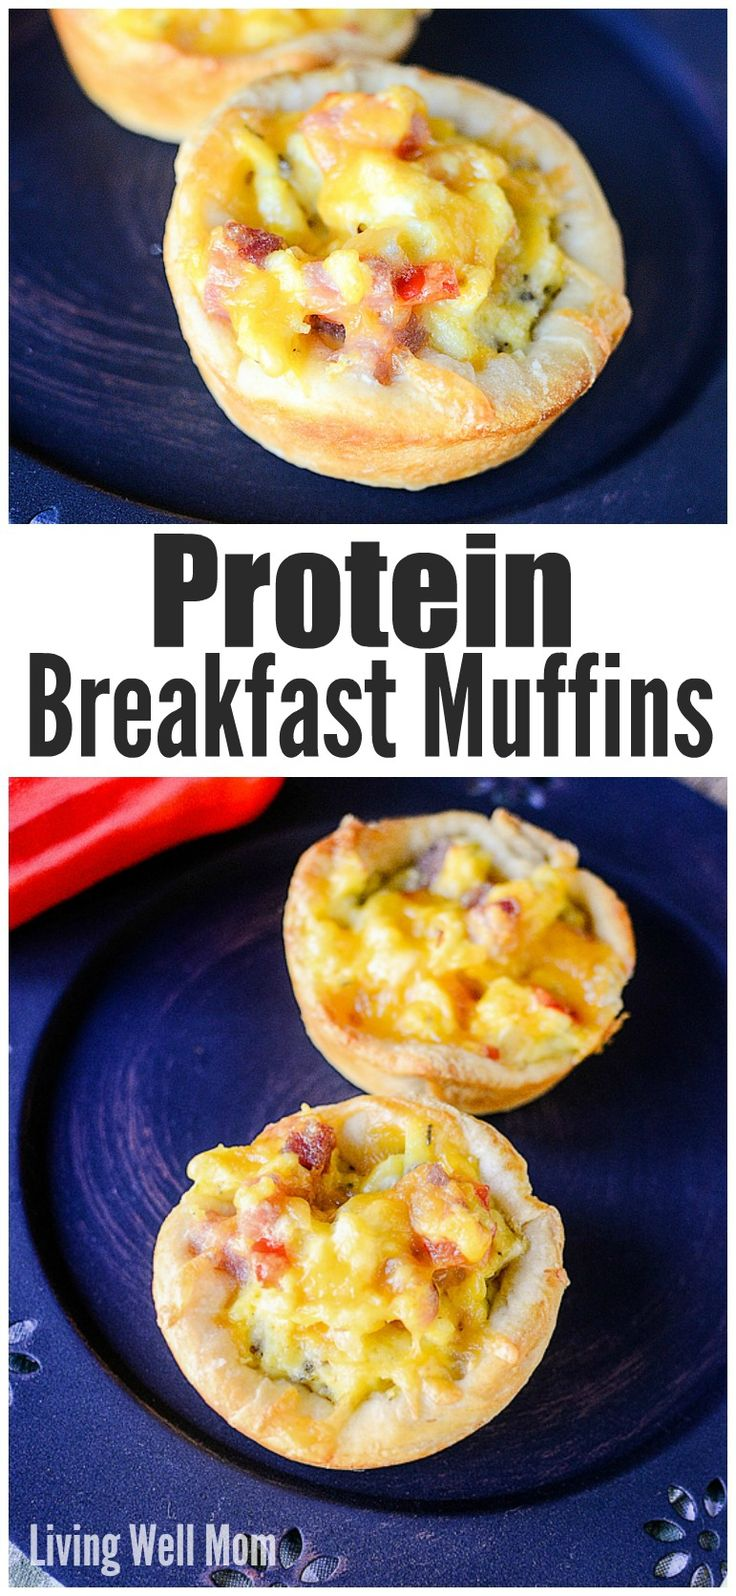 Here's a tasty on-the-go recipe for a hearty breakfast - Protein Breakfast Muffins! They're both adult and kid-approved and are great for making ahead and freezing too!